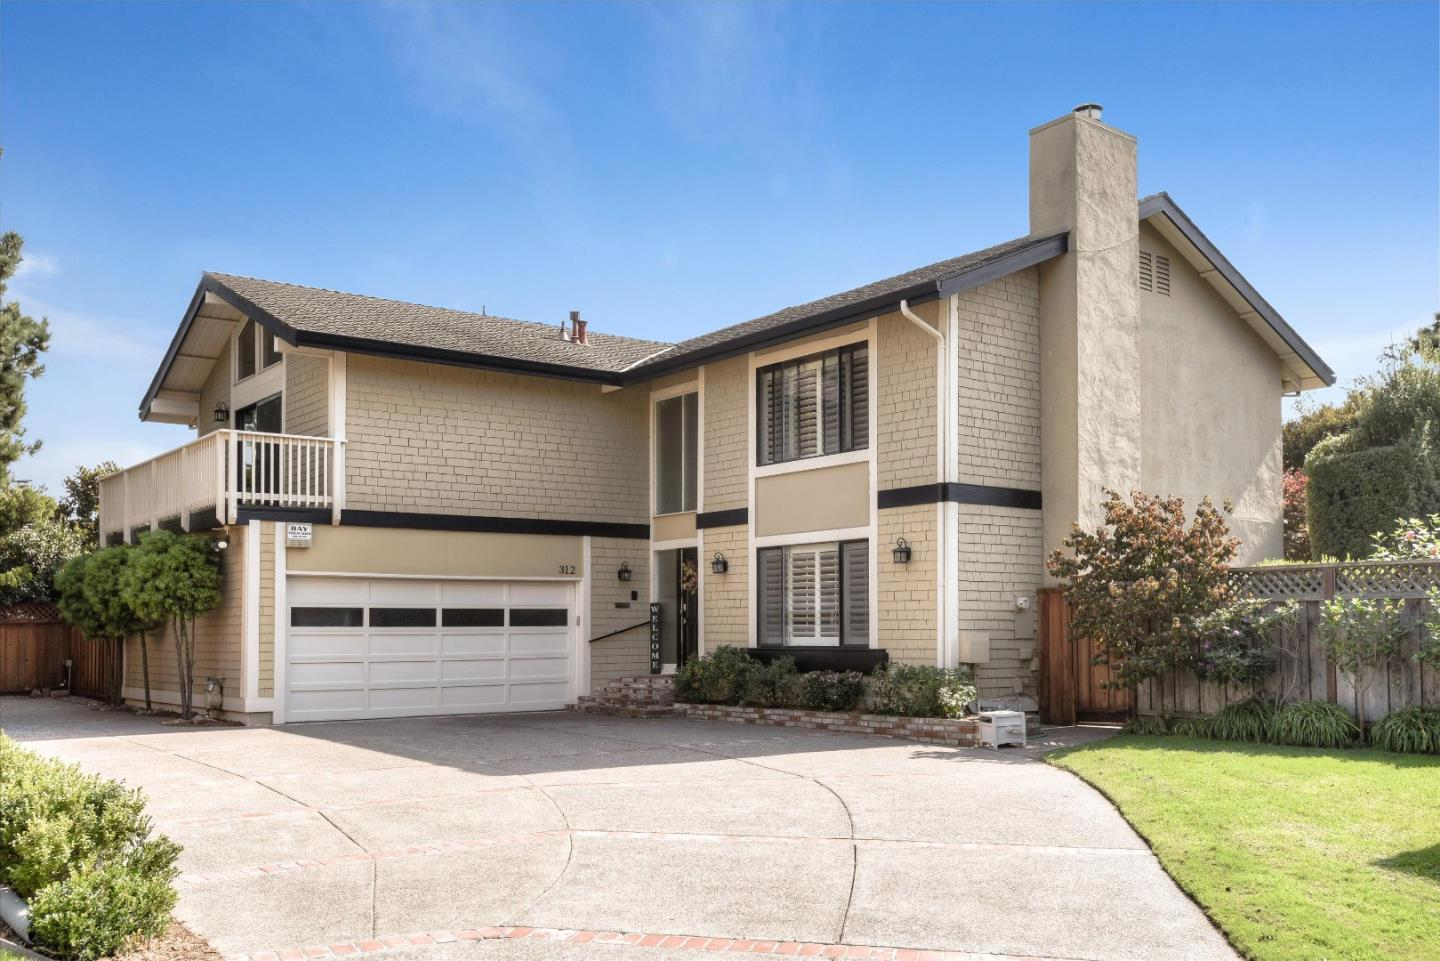 Fabulous Foster City living! This beautiful home boasts 5 bedrooms, 2.5 bathrooms located on a quiet cul de sac on an oversized lot. A perfect floor plan for a growing family, the main floor has hardwood floors, crown molding, and recess lighting throughout. Spacious family room, dining room, living room with wood burning fireplace, separate laundry room and large kitchen with lots natural light. The master suite has a large walk-in closet, high ceilings, walk in shower with double sinks. Home has ample extra storage, large 2 car garage with plenty of parking. Family room and kitchen opens up to your backyard oasis, perfect for entertaining, gardening, relaxing, hot tubing, practicing your golf swing and putting, or just for kids to freely enjoy. Conveniently located between San Francisco and the Silicon Valley. Close to schools, parks, trails, & shopping. Must See!